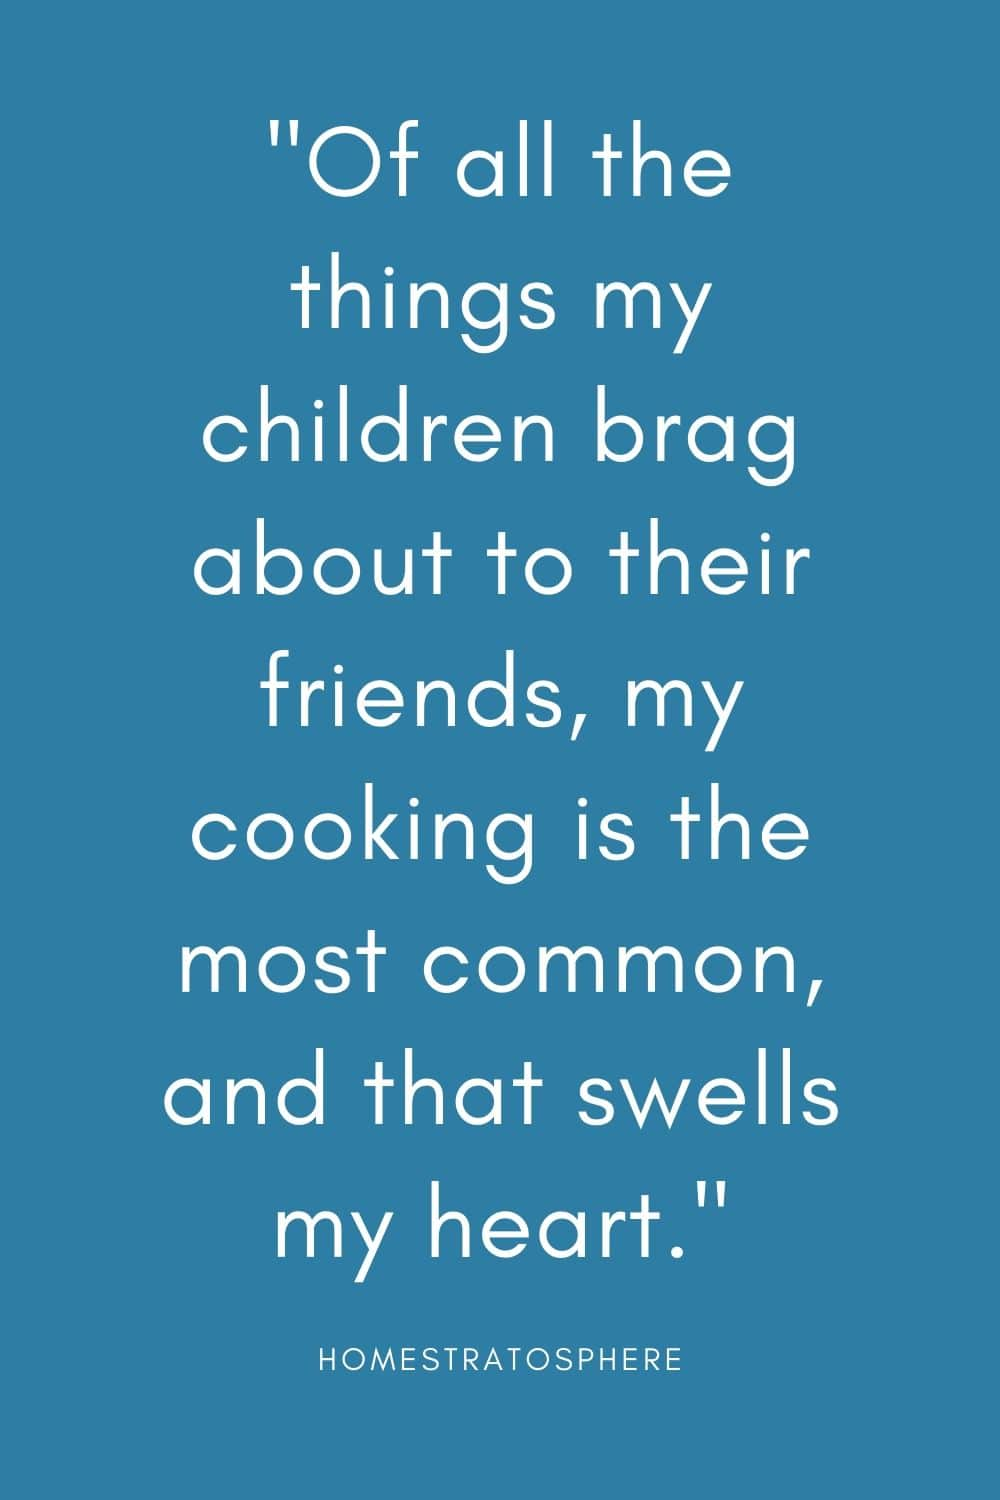 """Of all the things my children brag about to their friends, my cooking is the most common, and that swells my heart."""